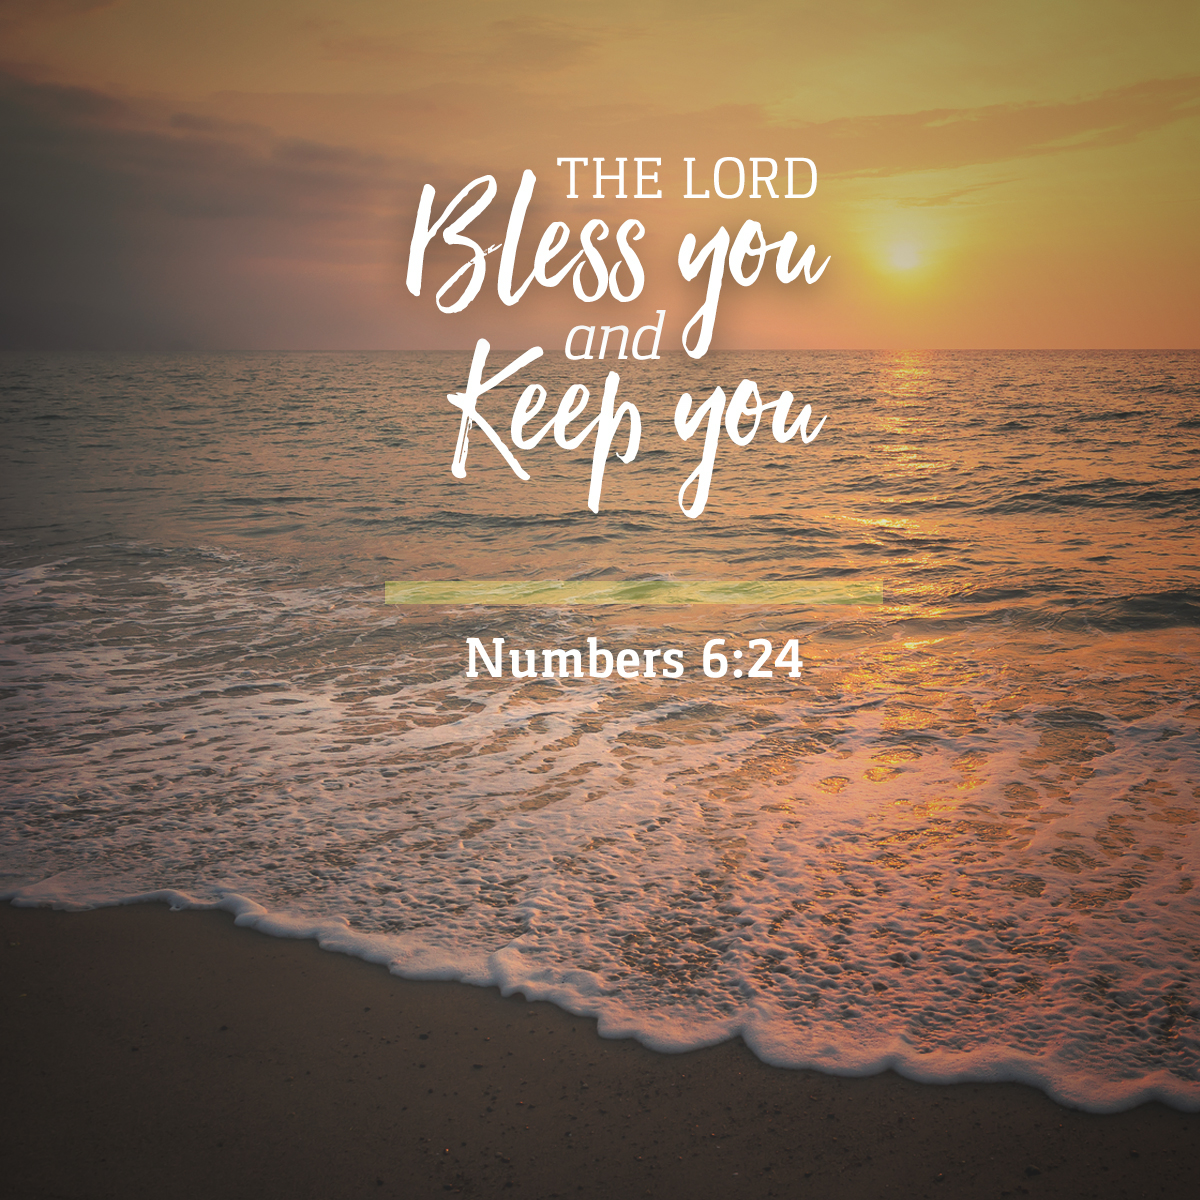 Numbers 6:24